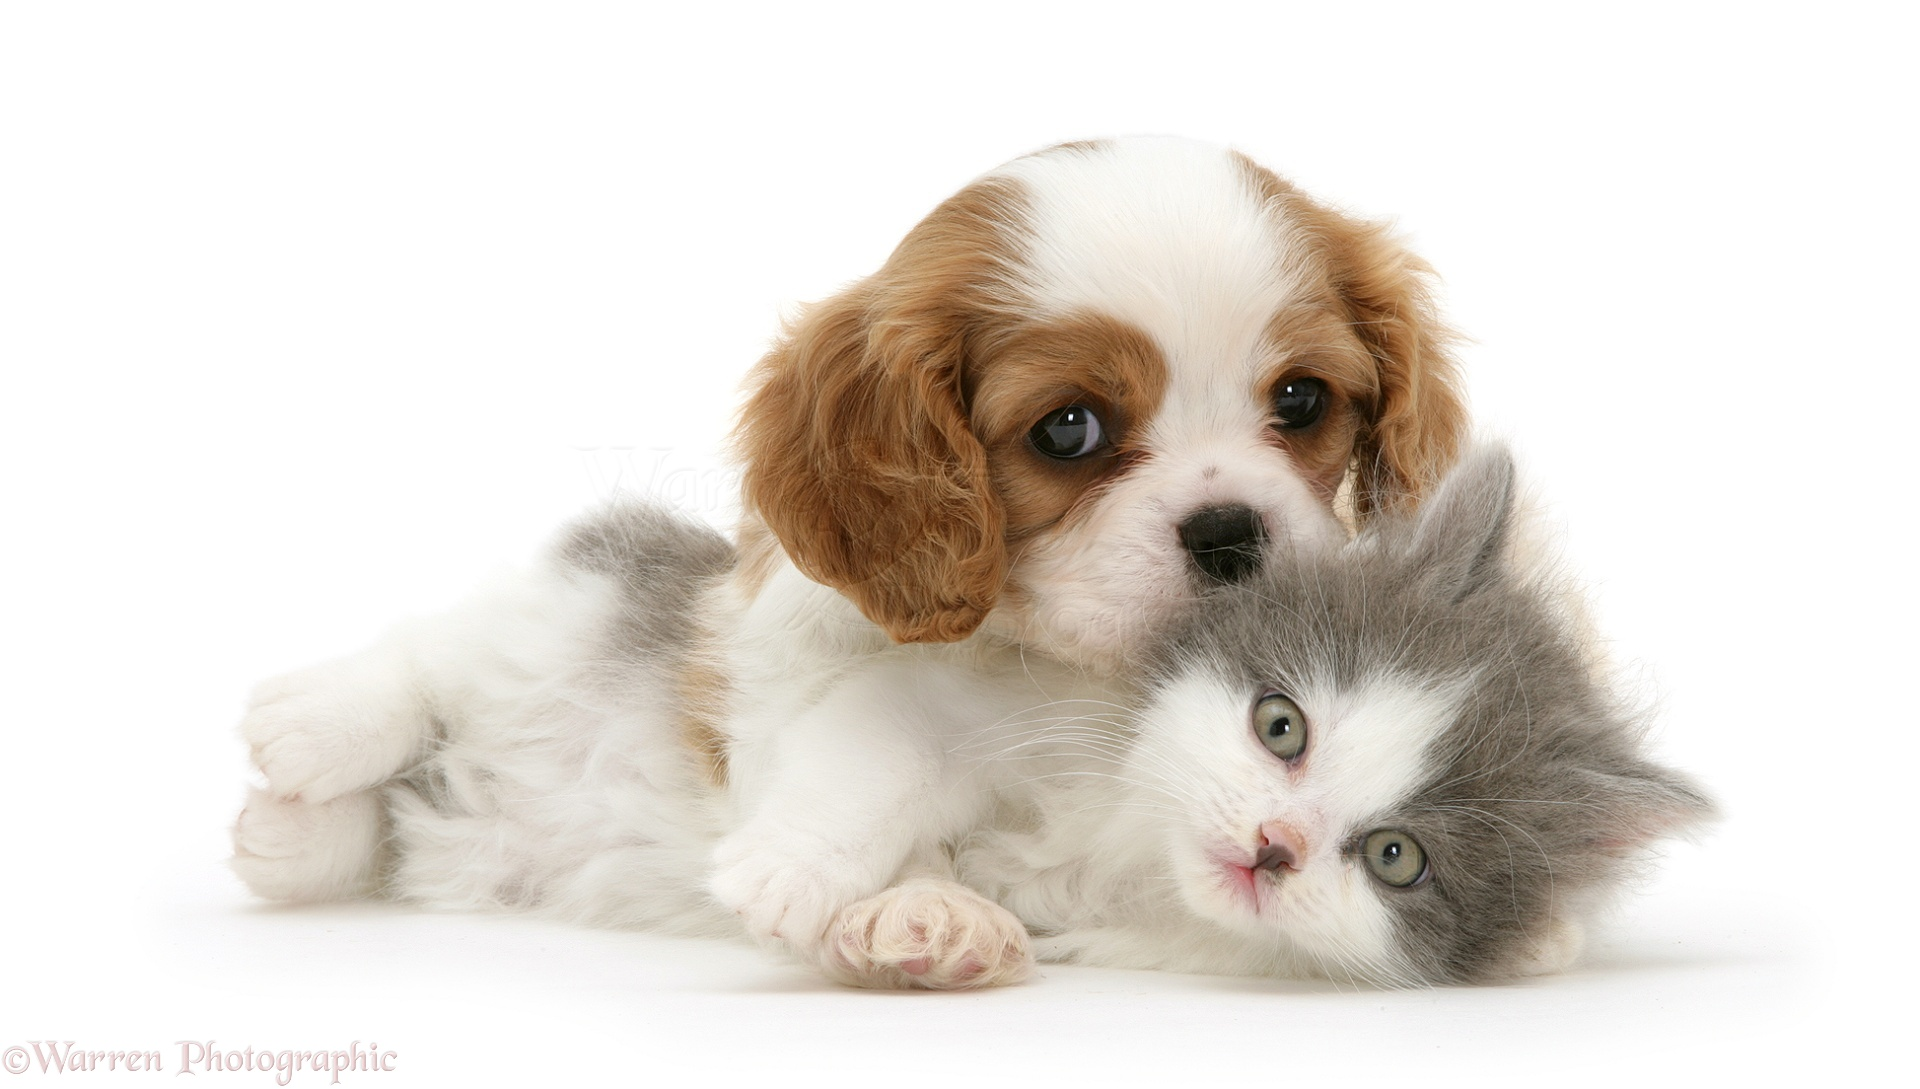 WP22095 Blenheim Cavalier King Charles Spaniel meets blue bicolour ...